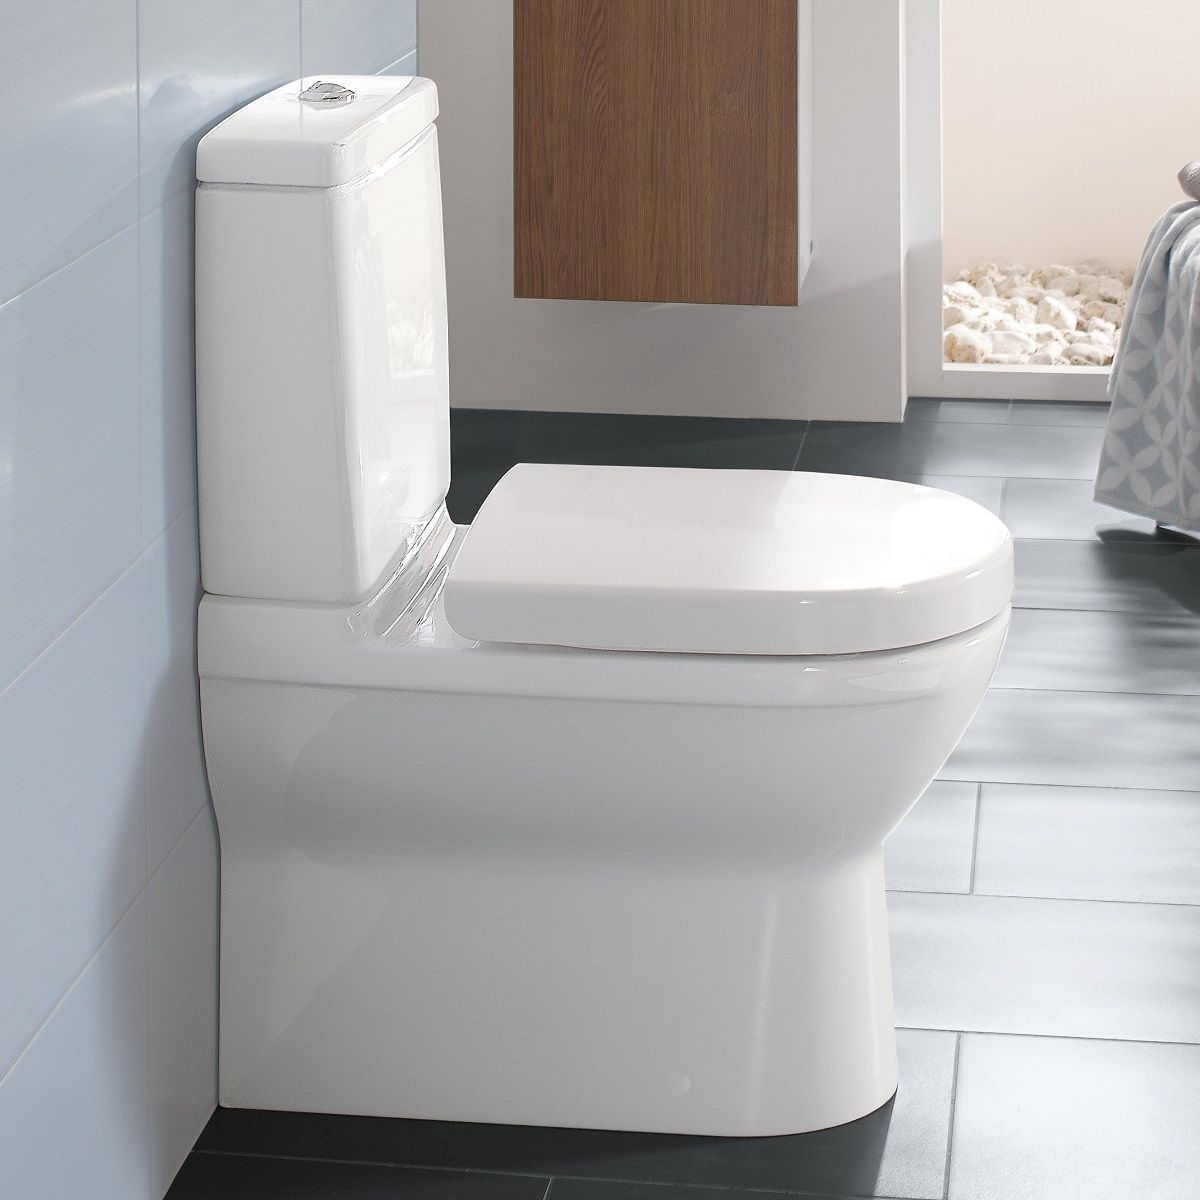 Villeroy And Boch O Novo Close Coupled Closed Back Wc Close Coupled Toilets Toilets For Sale Wc Design